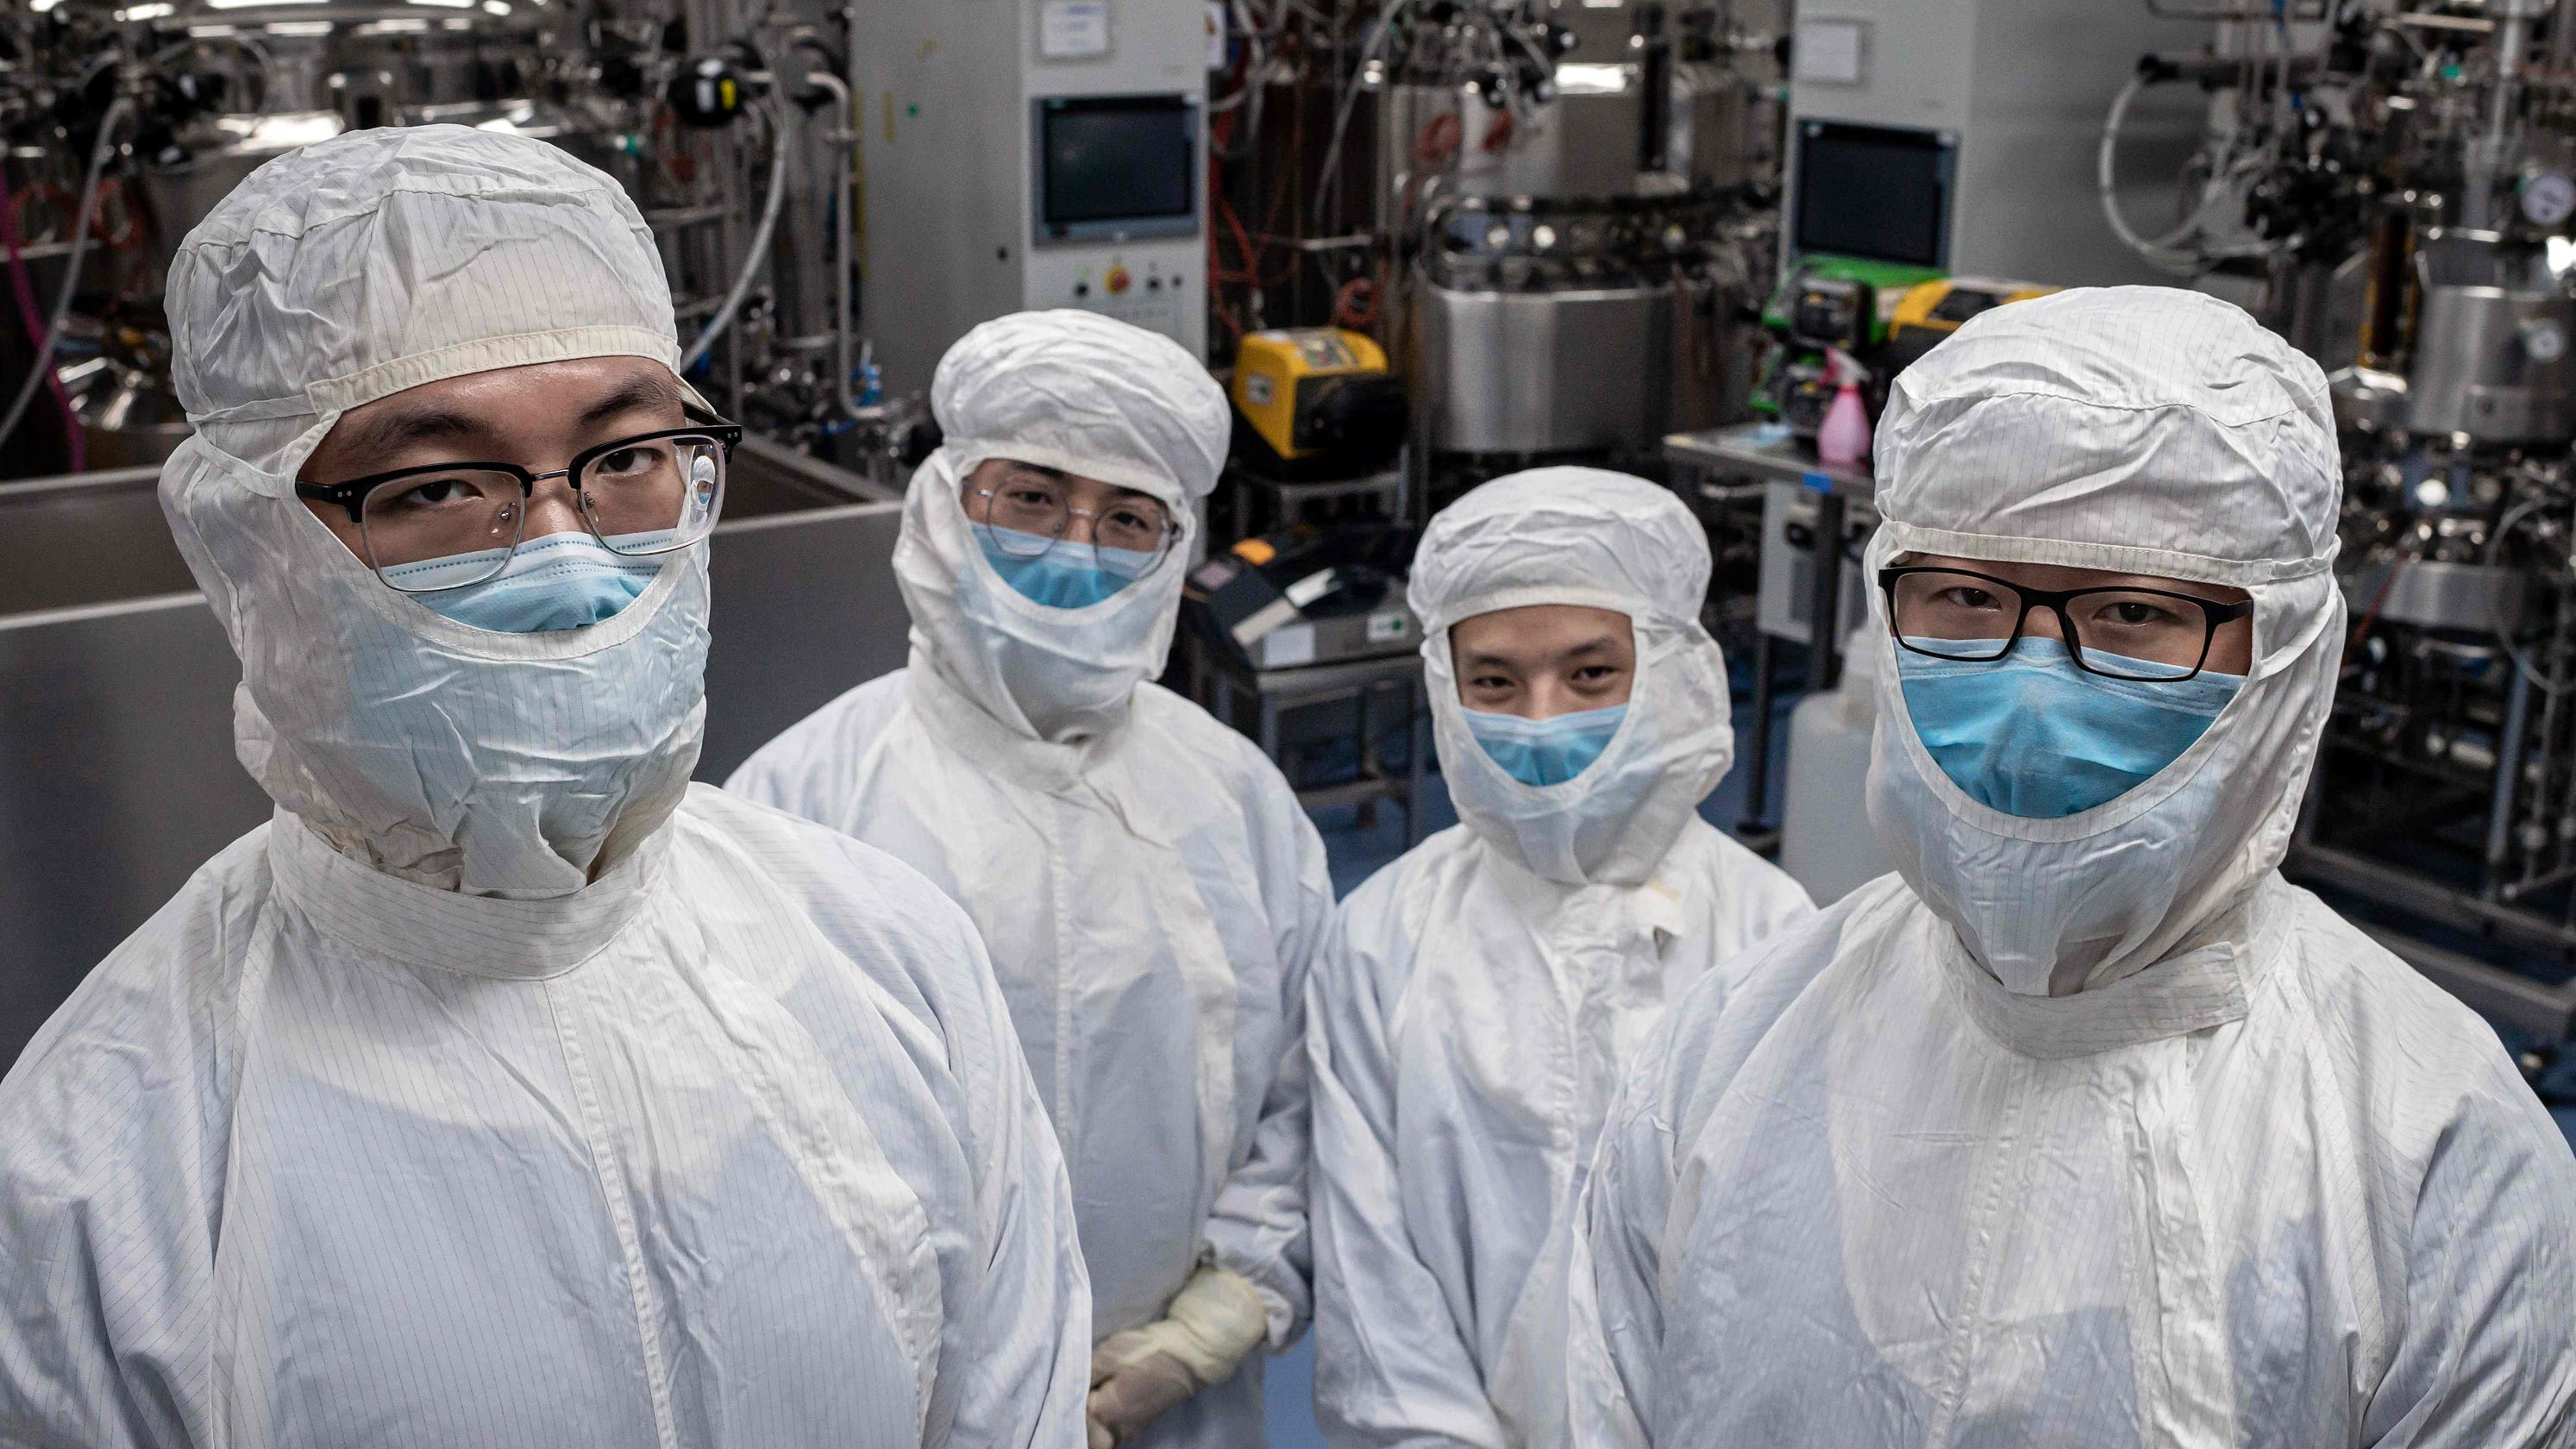 Latest on global search for coronavirus vaccine: Three candidates show early promise thumbnail